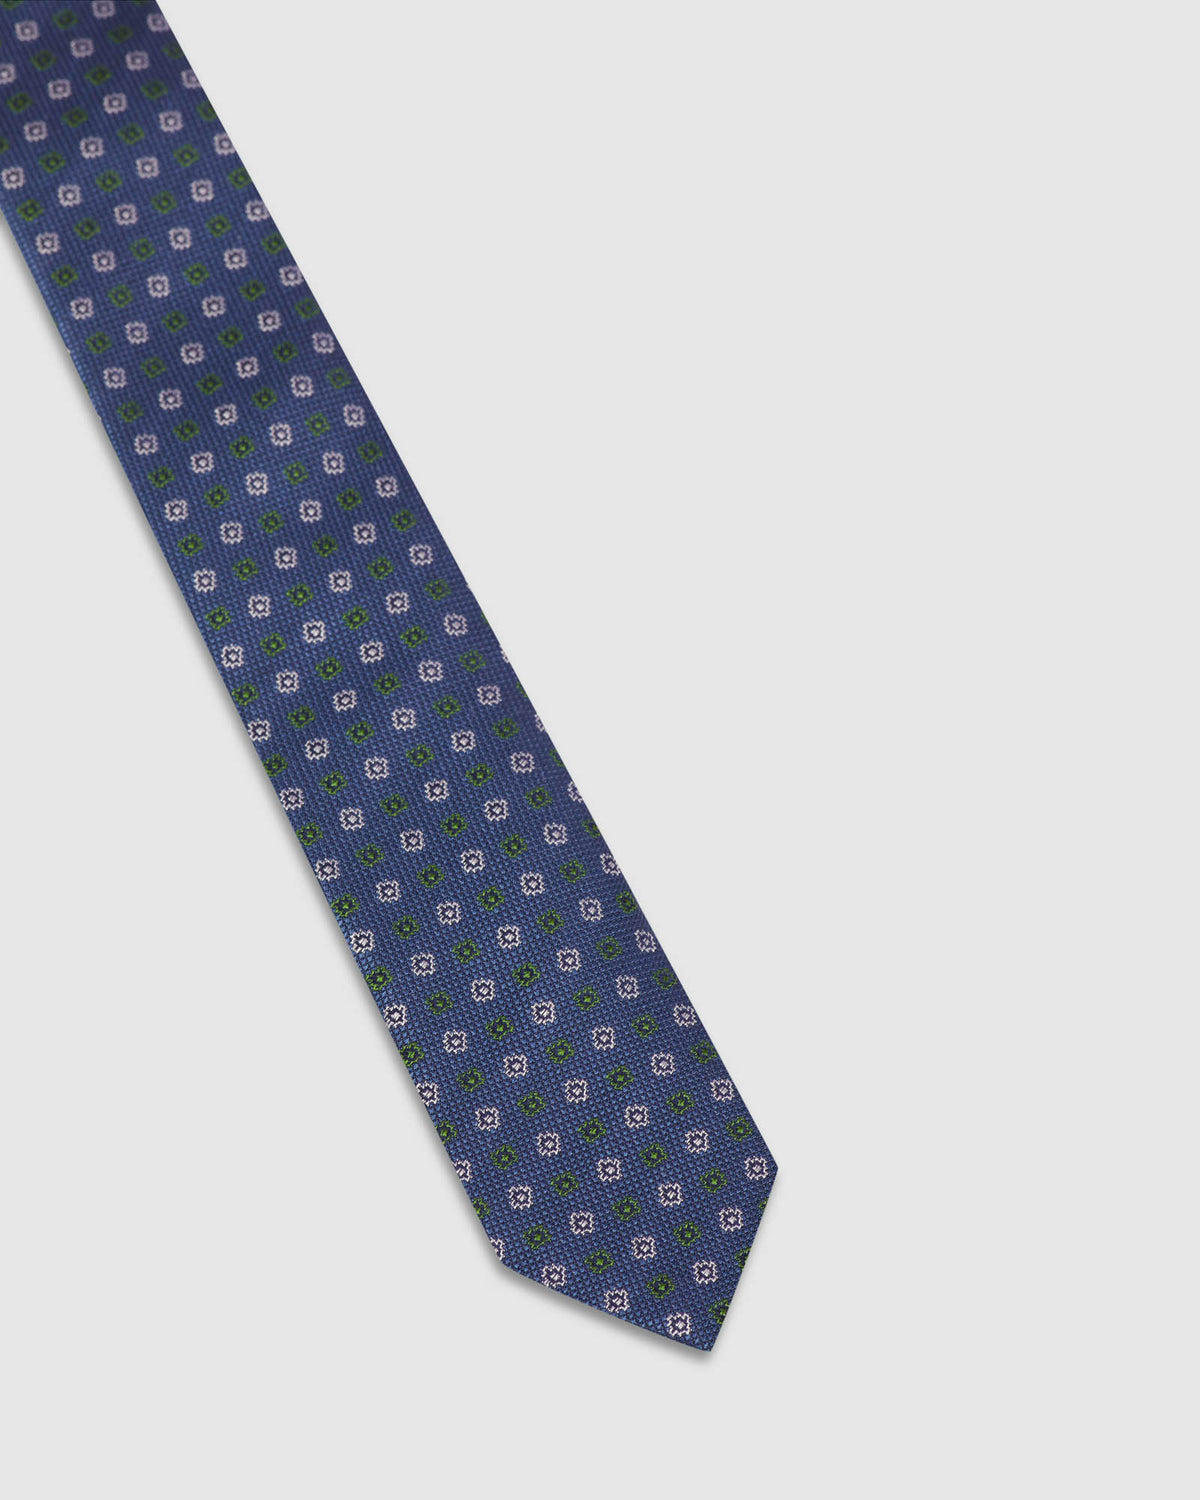 TEXTURED SQUARE SILK SKINNY TIE NAVY/GREEN